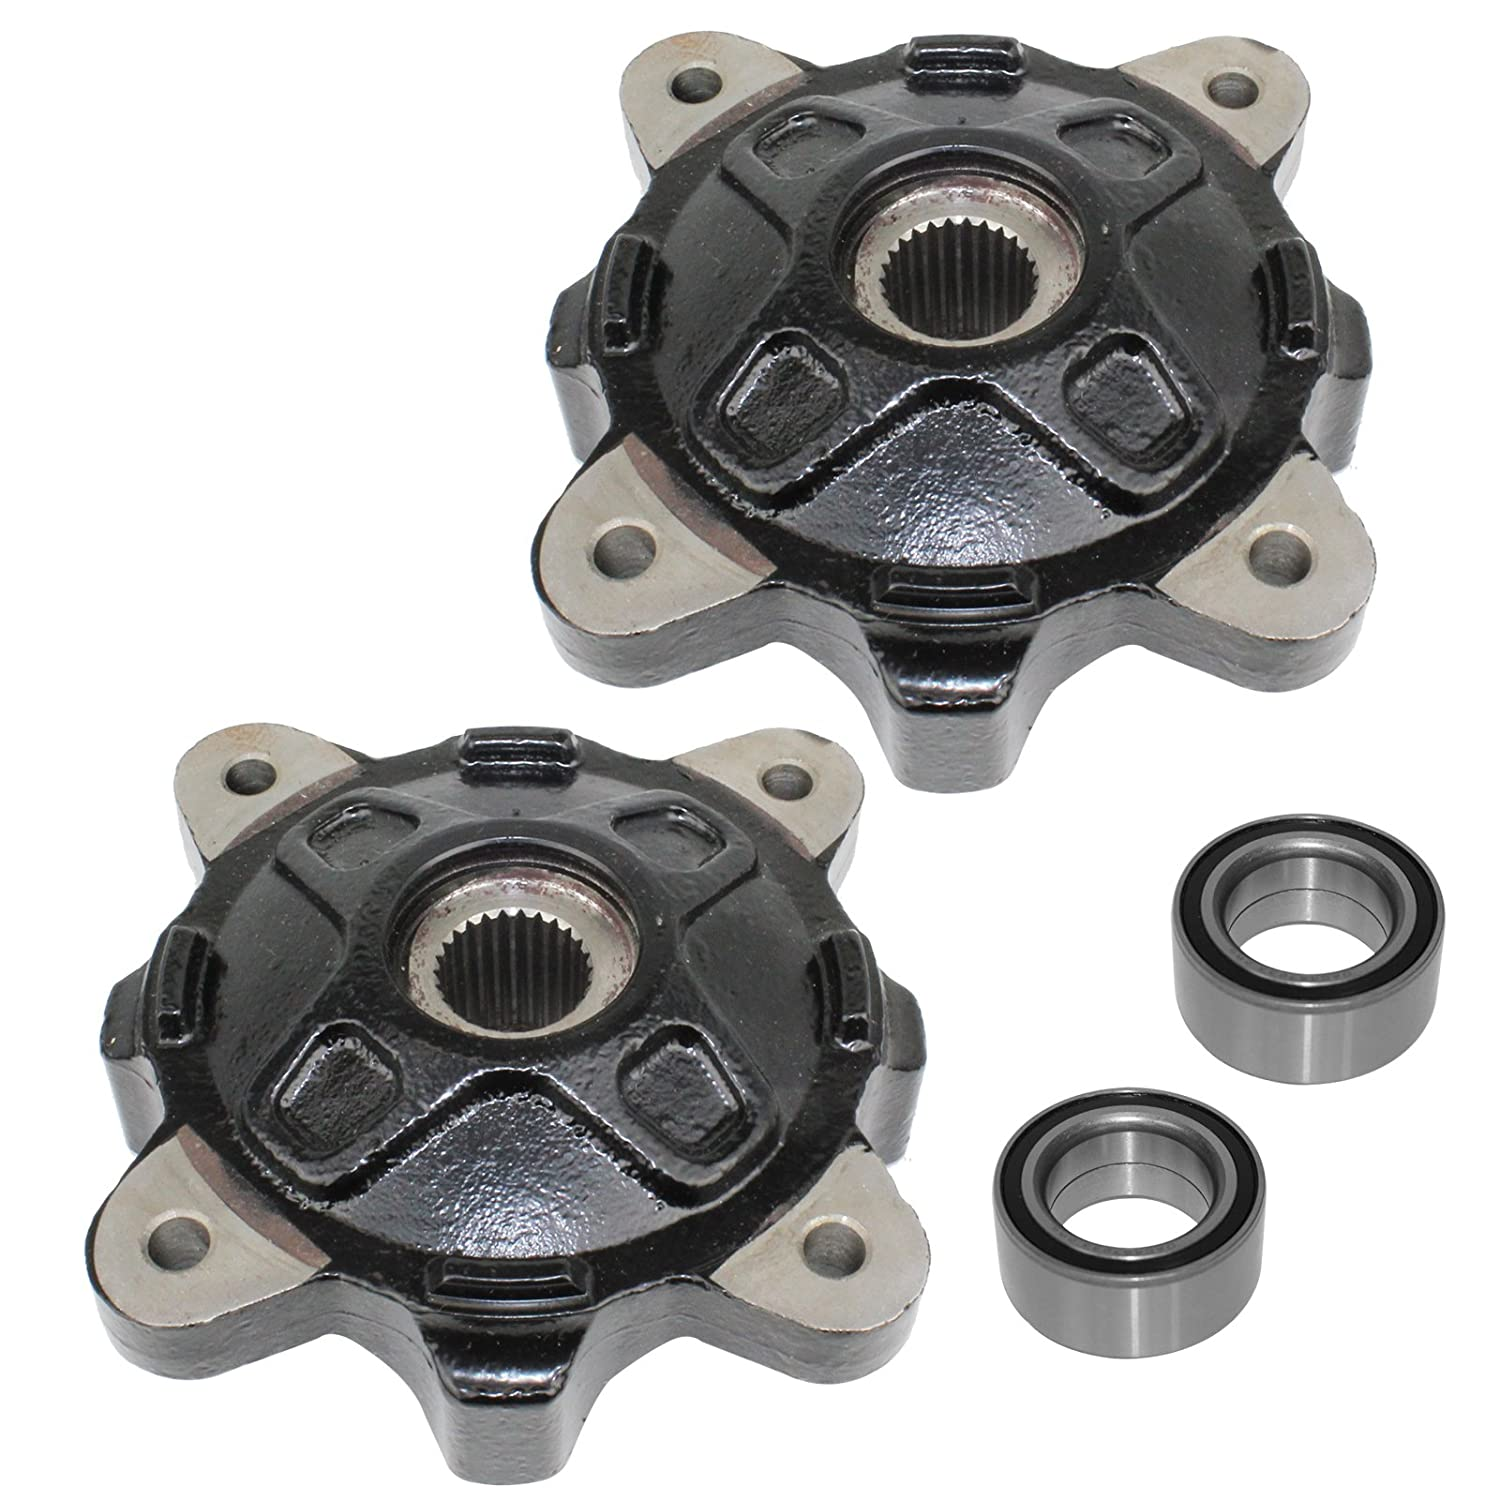 CALTRIC FRONT LEFT RIGHT WHEEL HUBS and BALL BEARINGS FIT Polaris RZR XP 900 2011 2012 2013